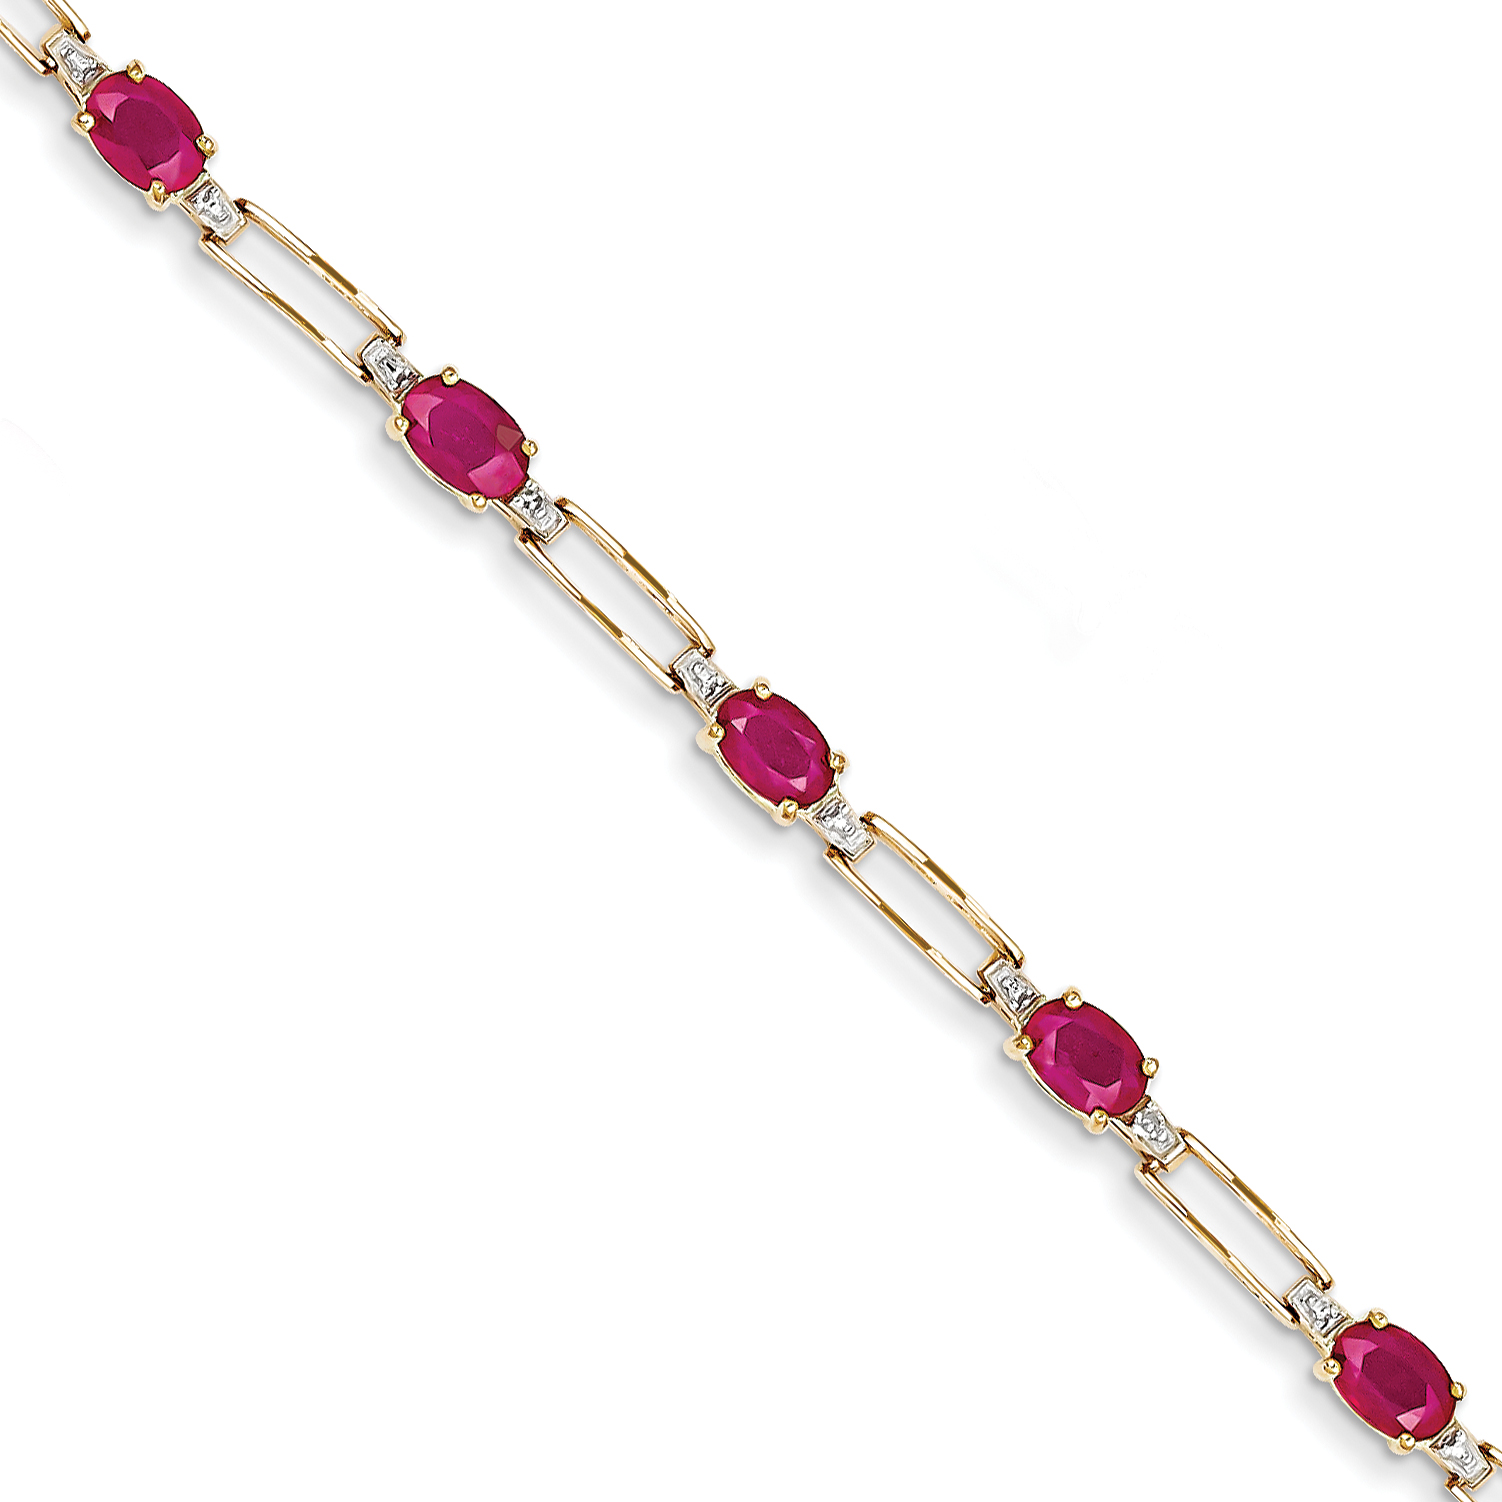 14k Yellow Gold Diamond and Composite Ruby Oval Bracelet by